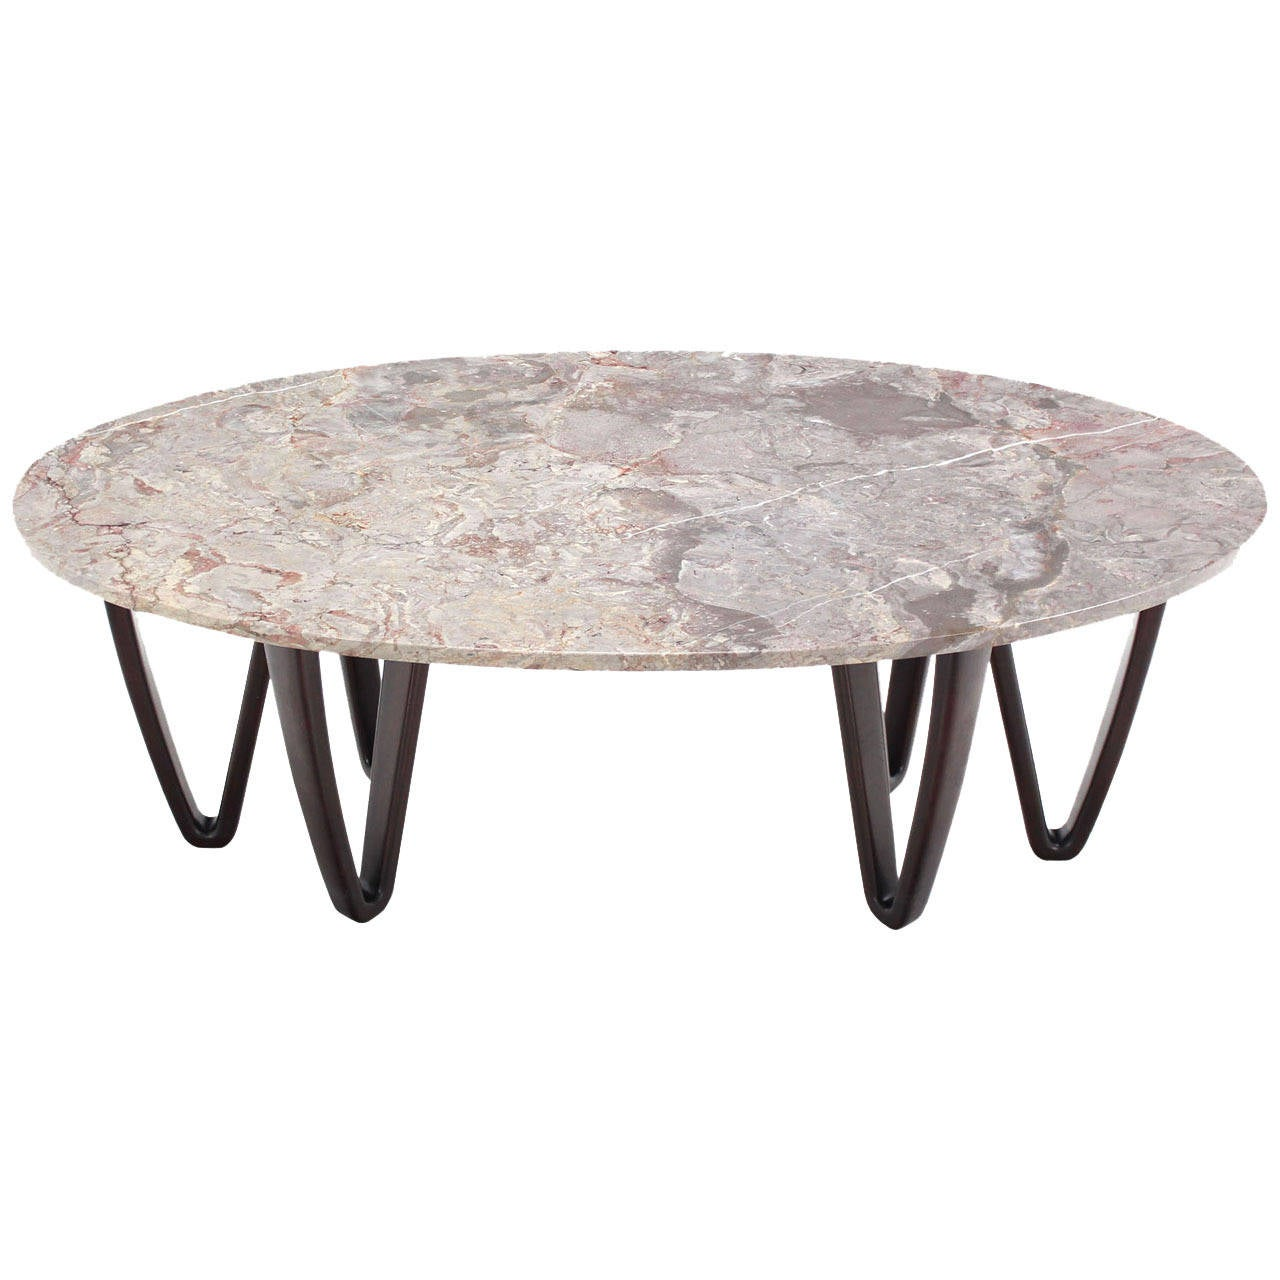 Oval marble top coffee table on wooden hair pin legs at 1stdibs Stone top coffee table